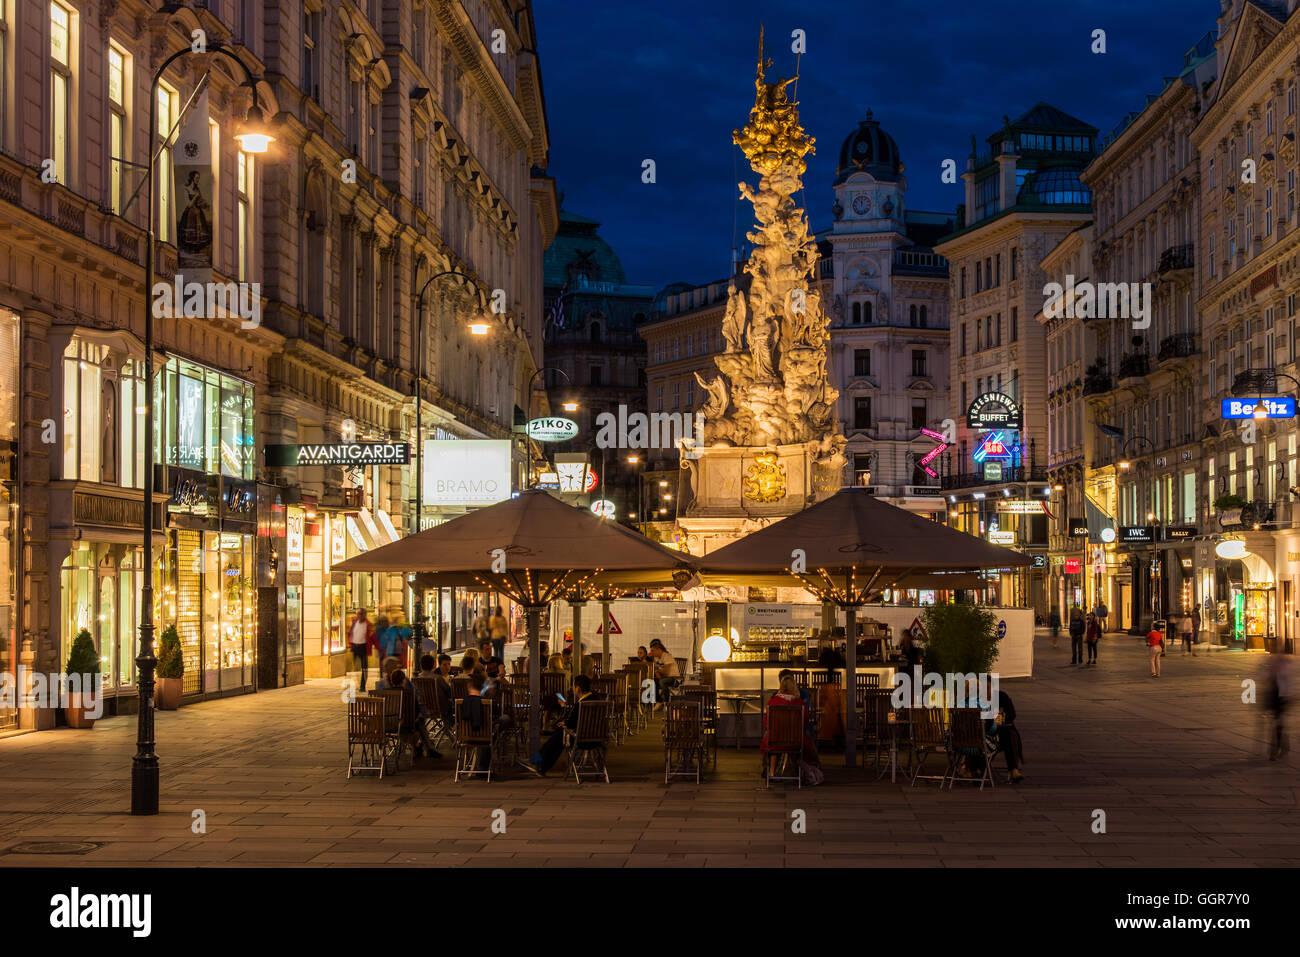 Night view of Graben pedestrian street, Vienna, Austria - Stock Image